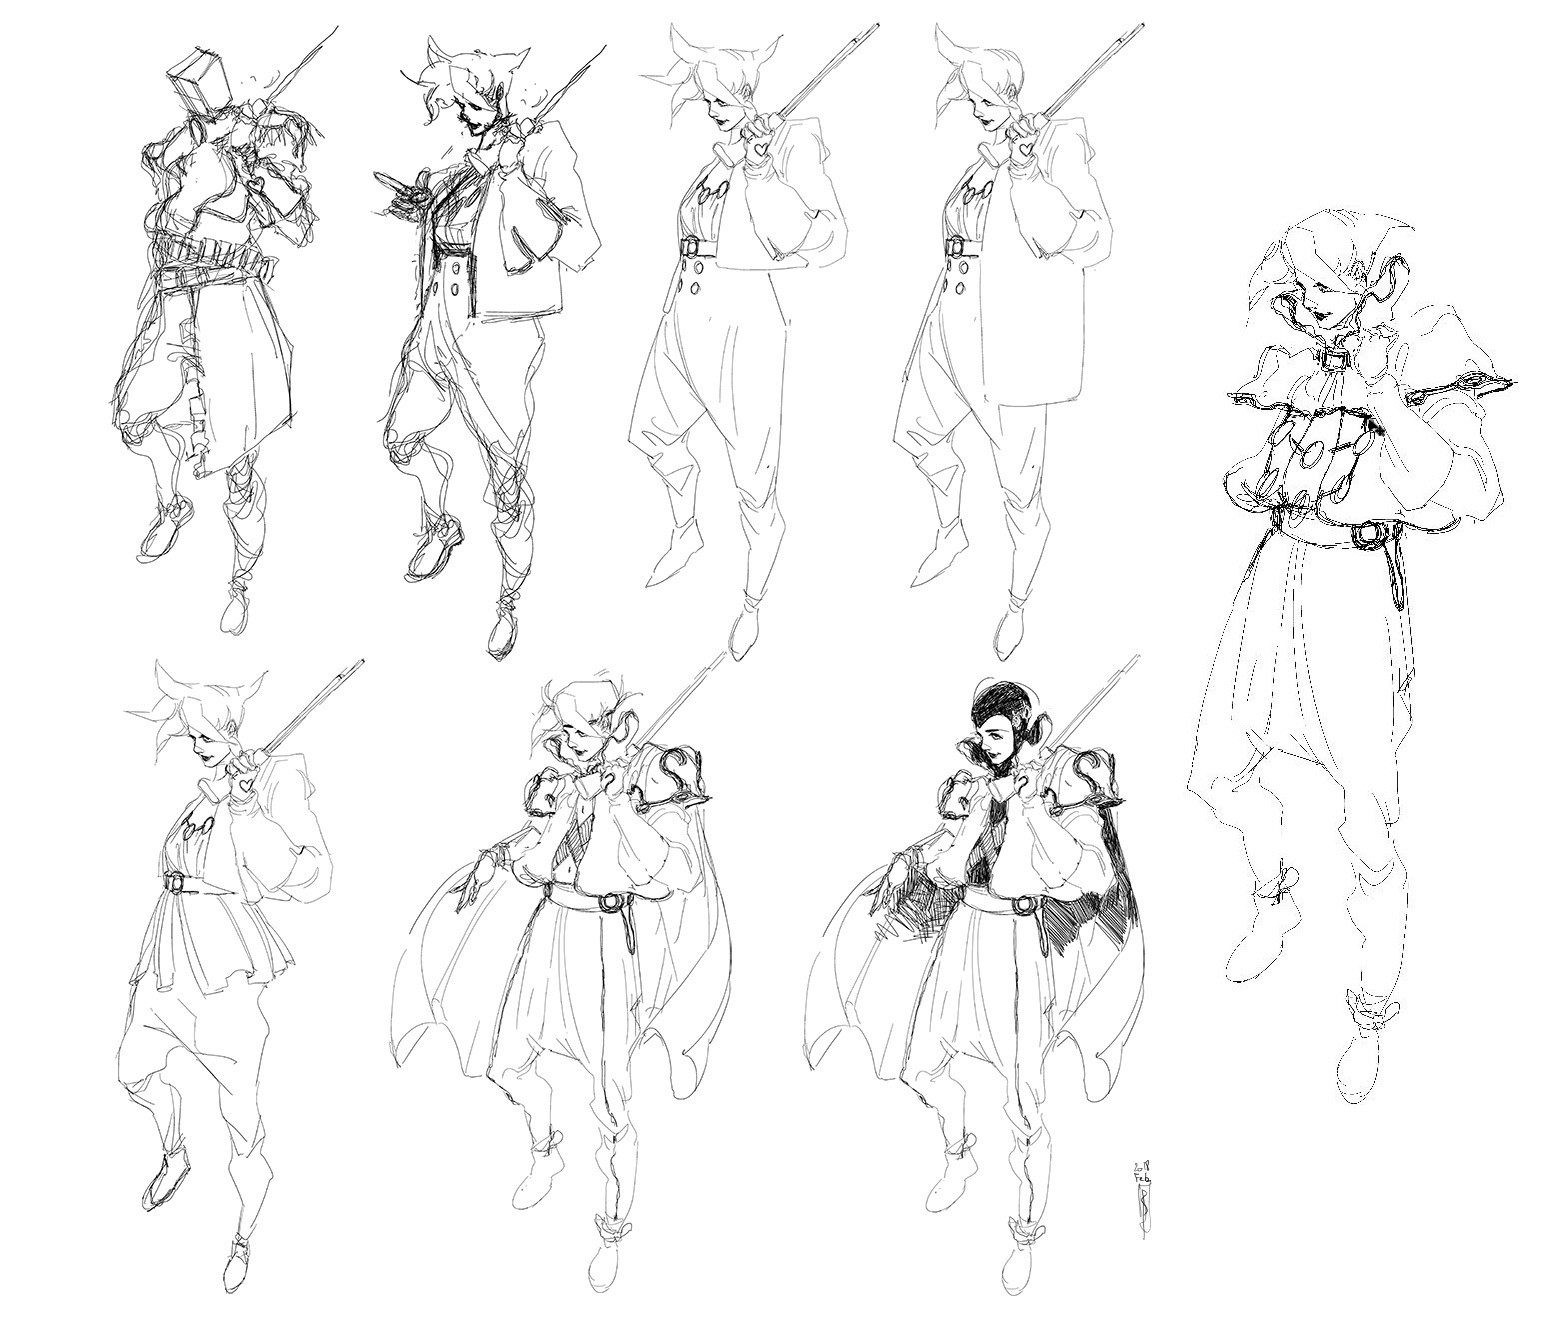 Boell oyino amoramort queen sketches